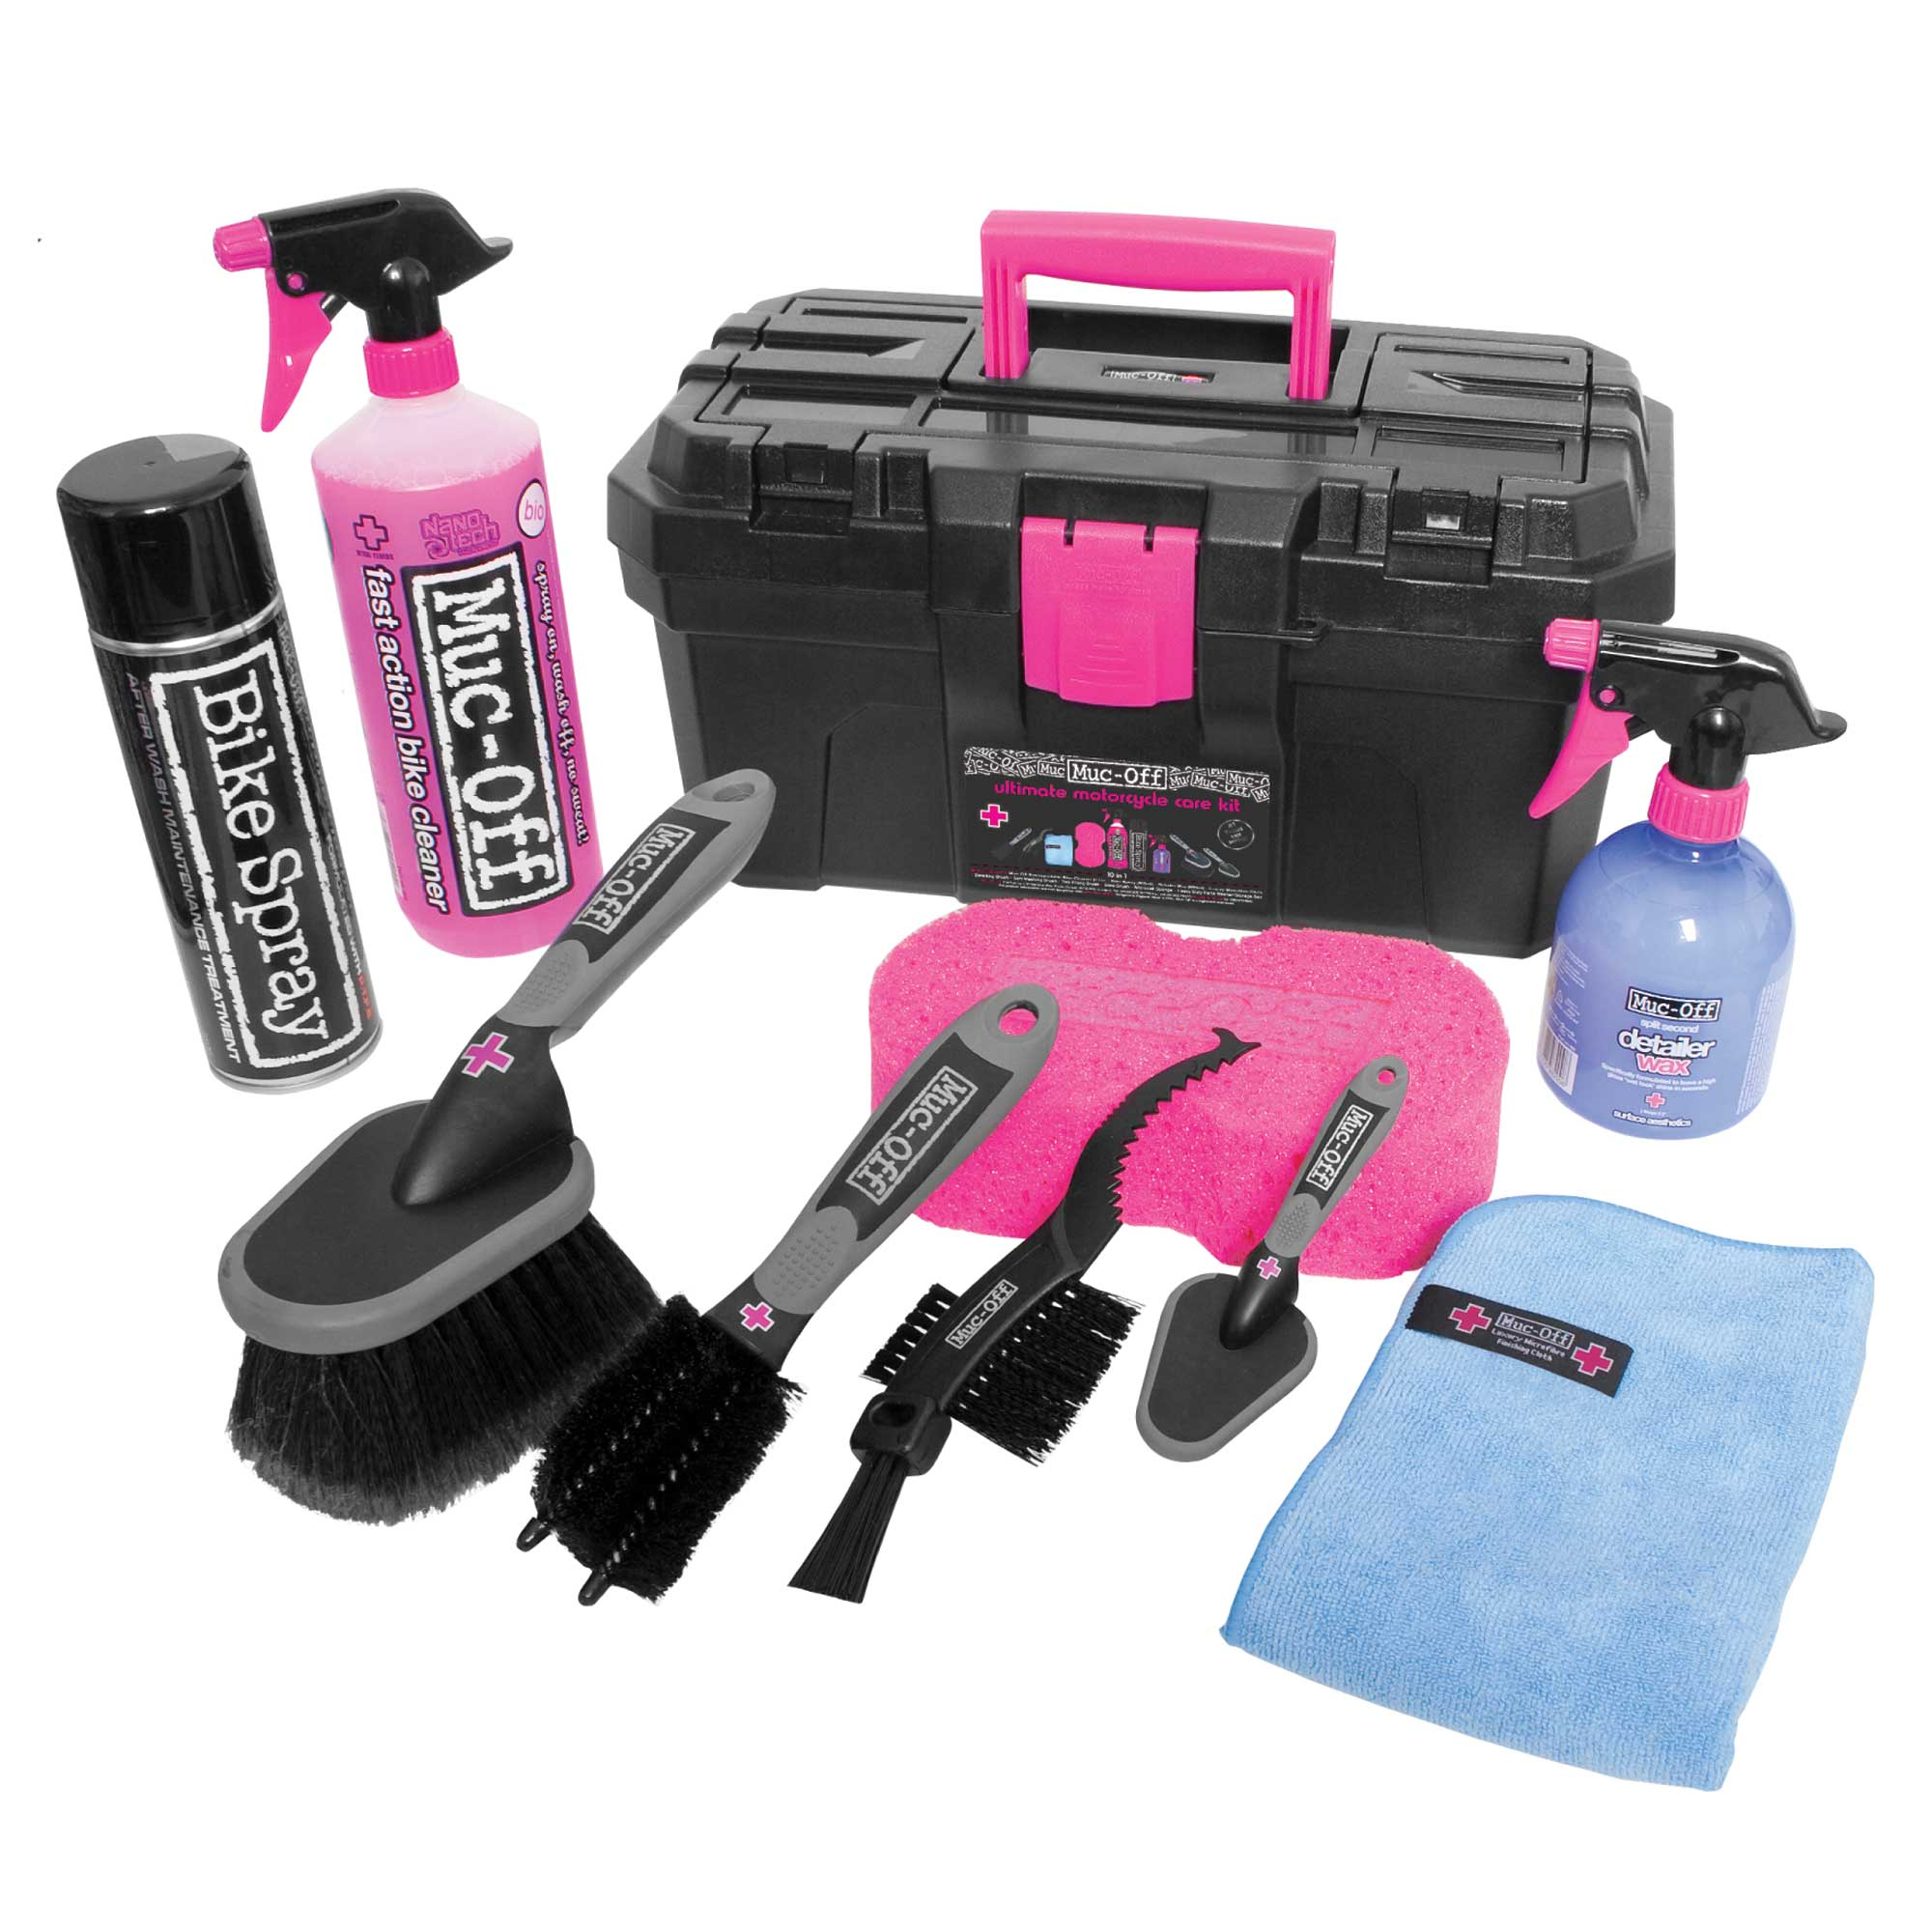 Muc-Off Ultimate Bicycle Kit (Kompletní sada pro mytí a konzervaci)